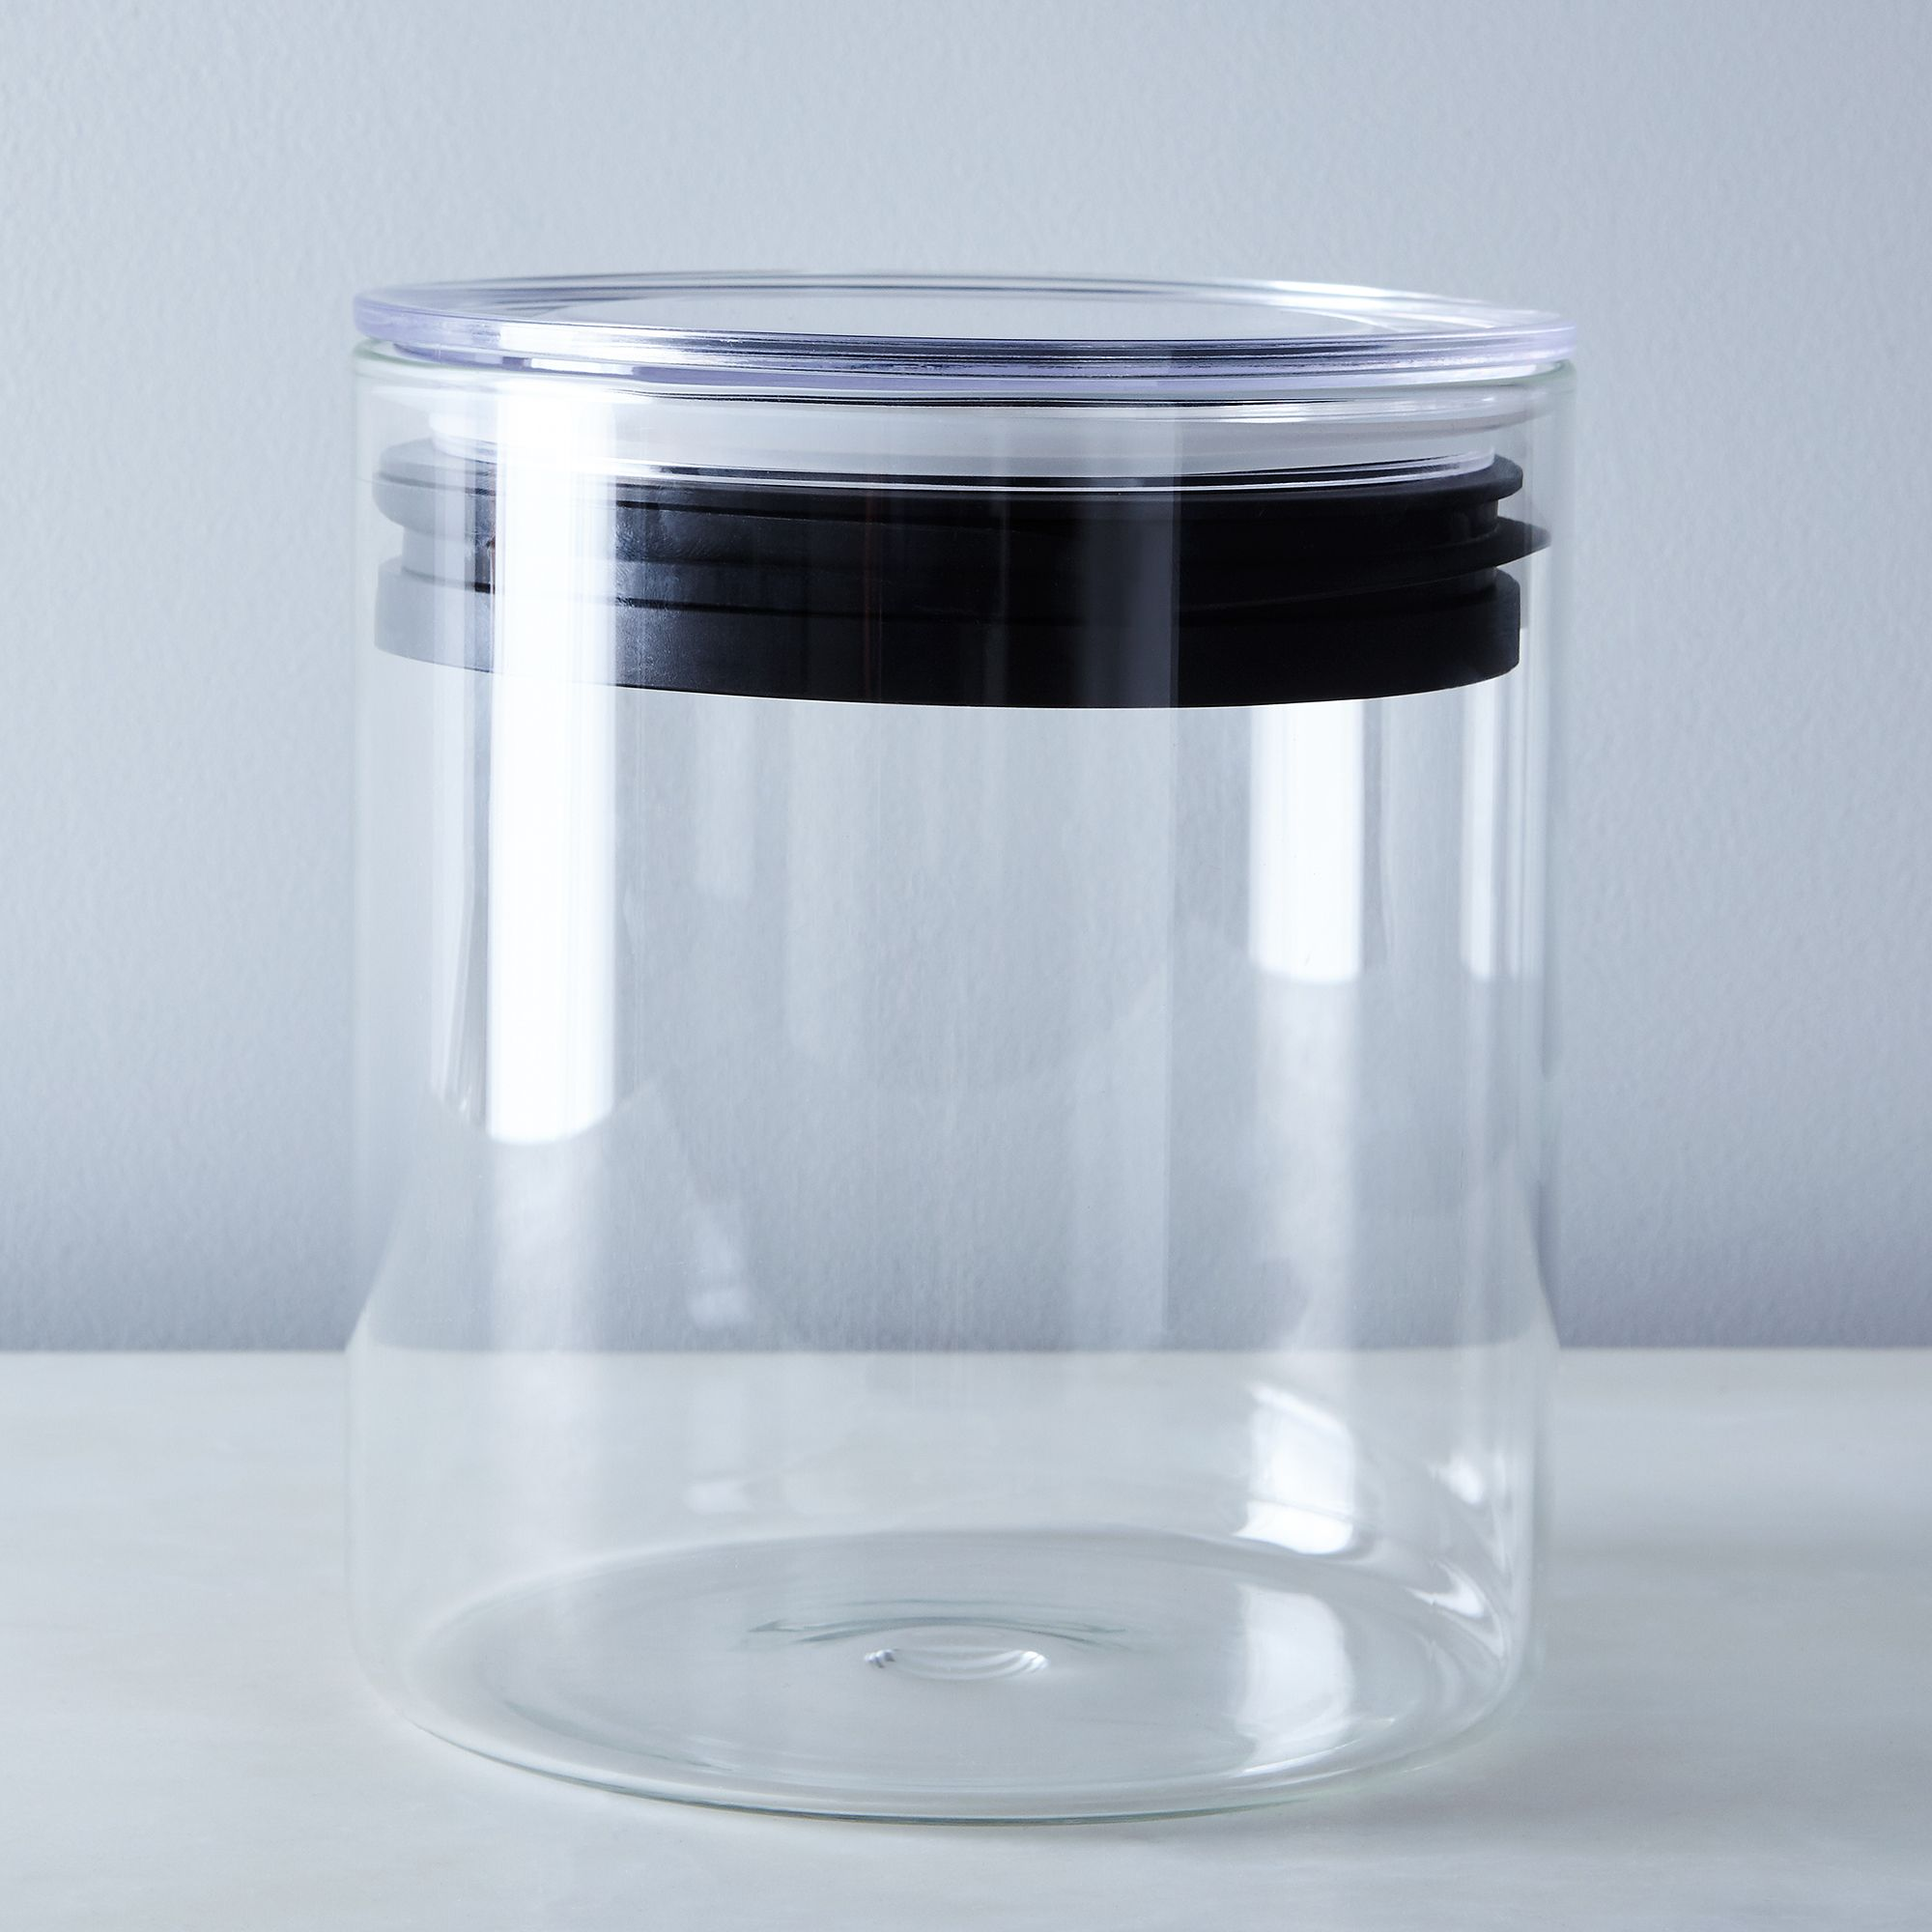 30a6c59d f1ce 4996 8f17 390ec68c4f07  2017 0427 planetary design glass airtight food storage containers 8 inch silo rocky luten 012